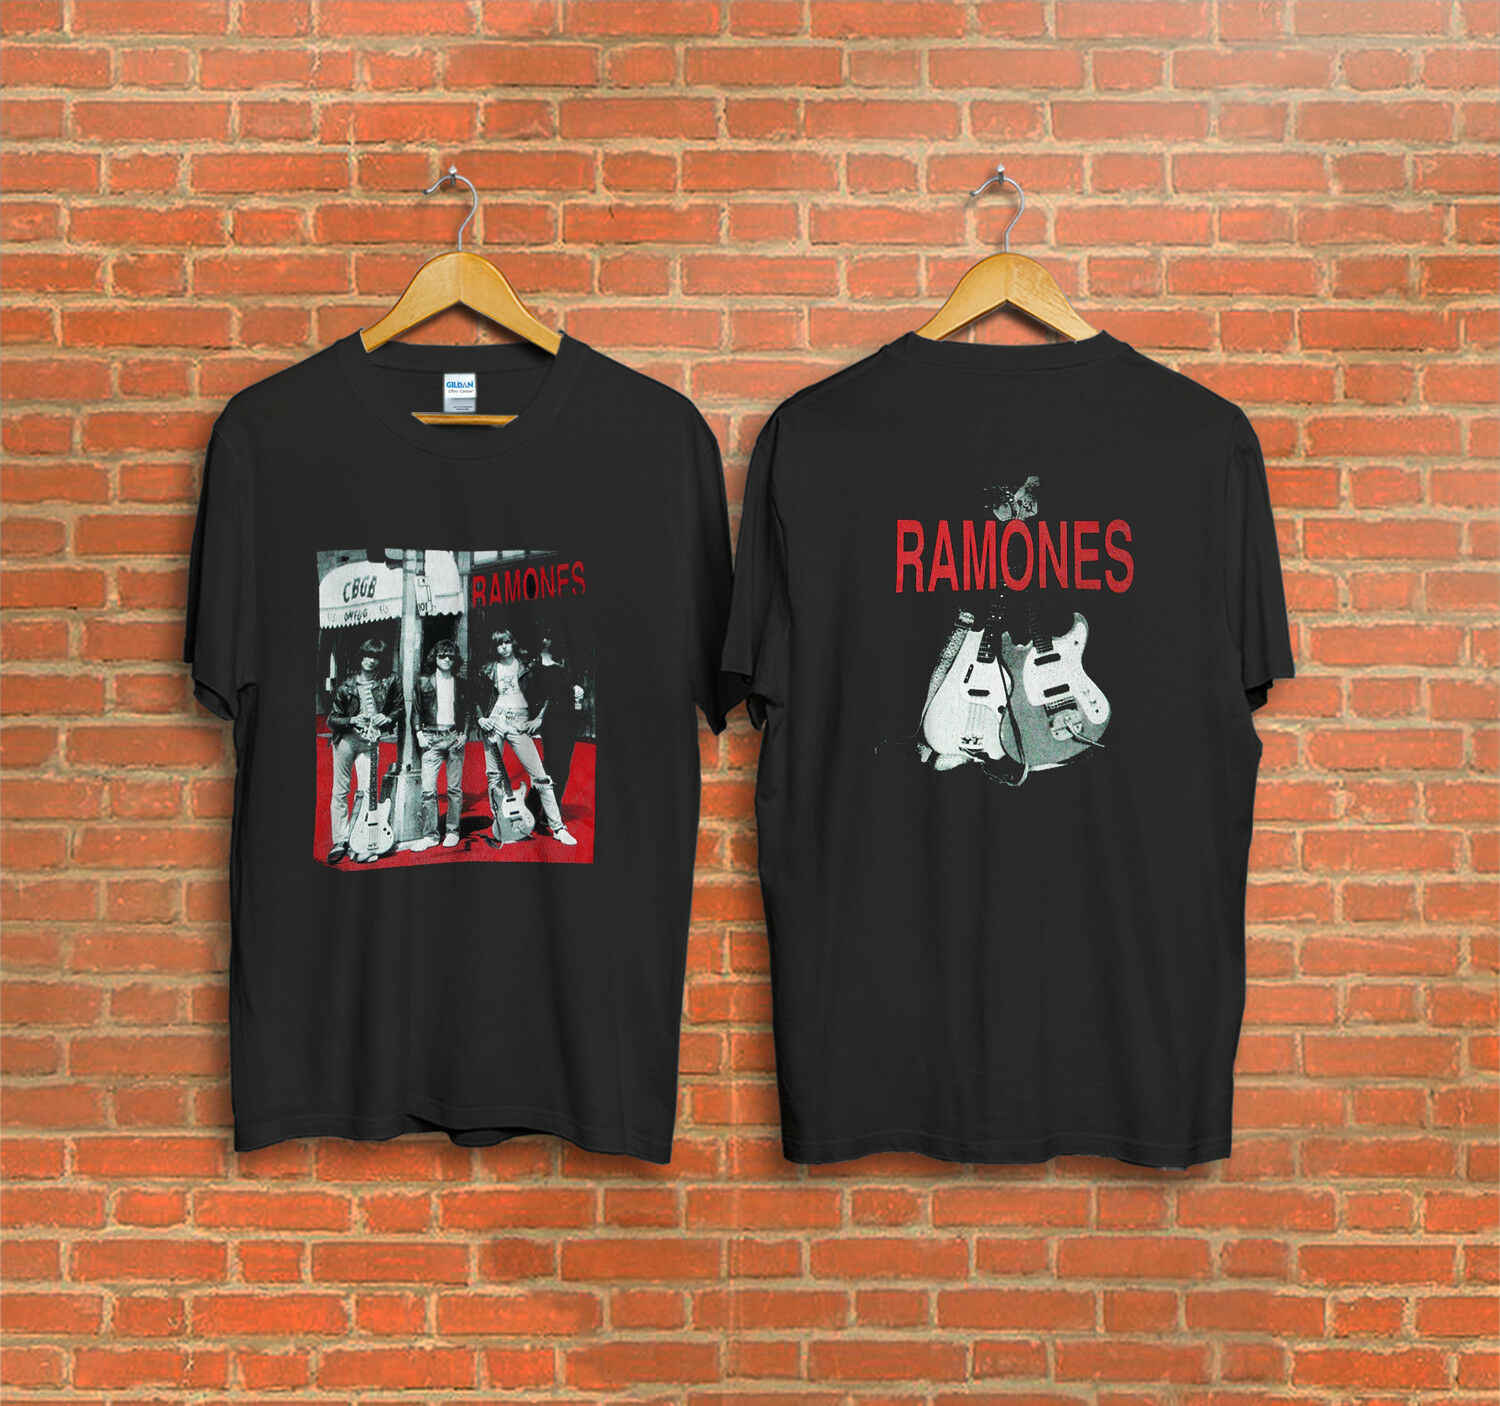 Vintage Ramones,CBGB OMFUG super collectible punk rock T-Shirt T Shirt O-Neck Fashion Casual High Quality Print T Shirt